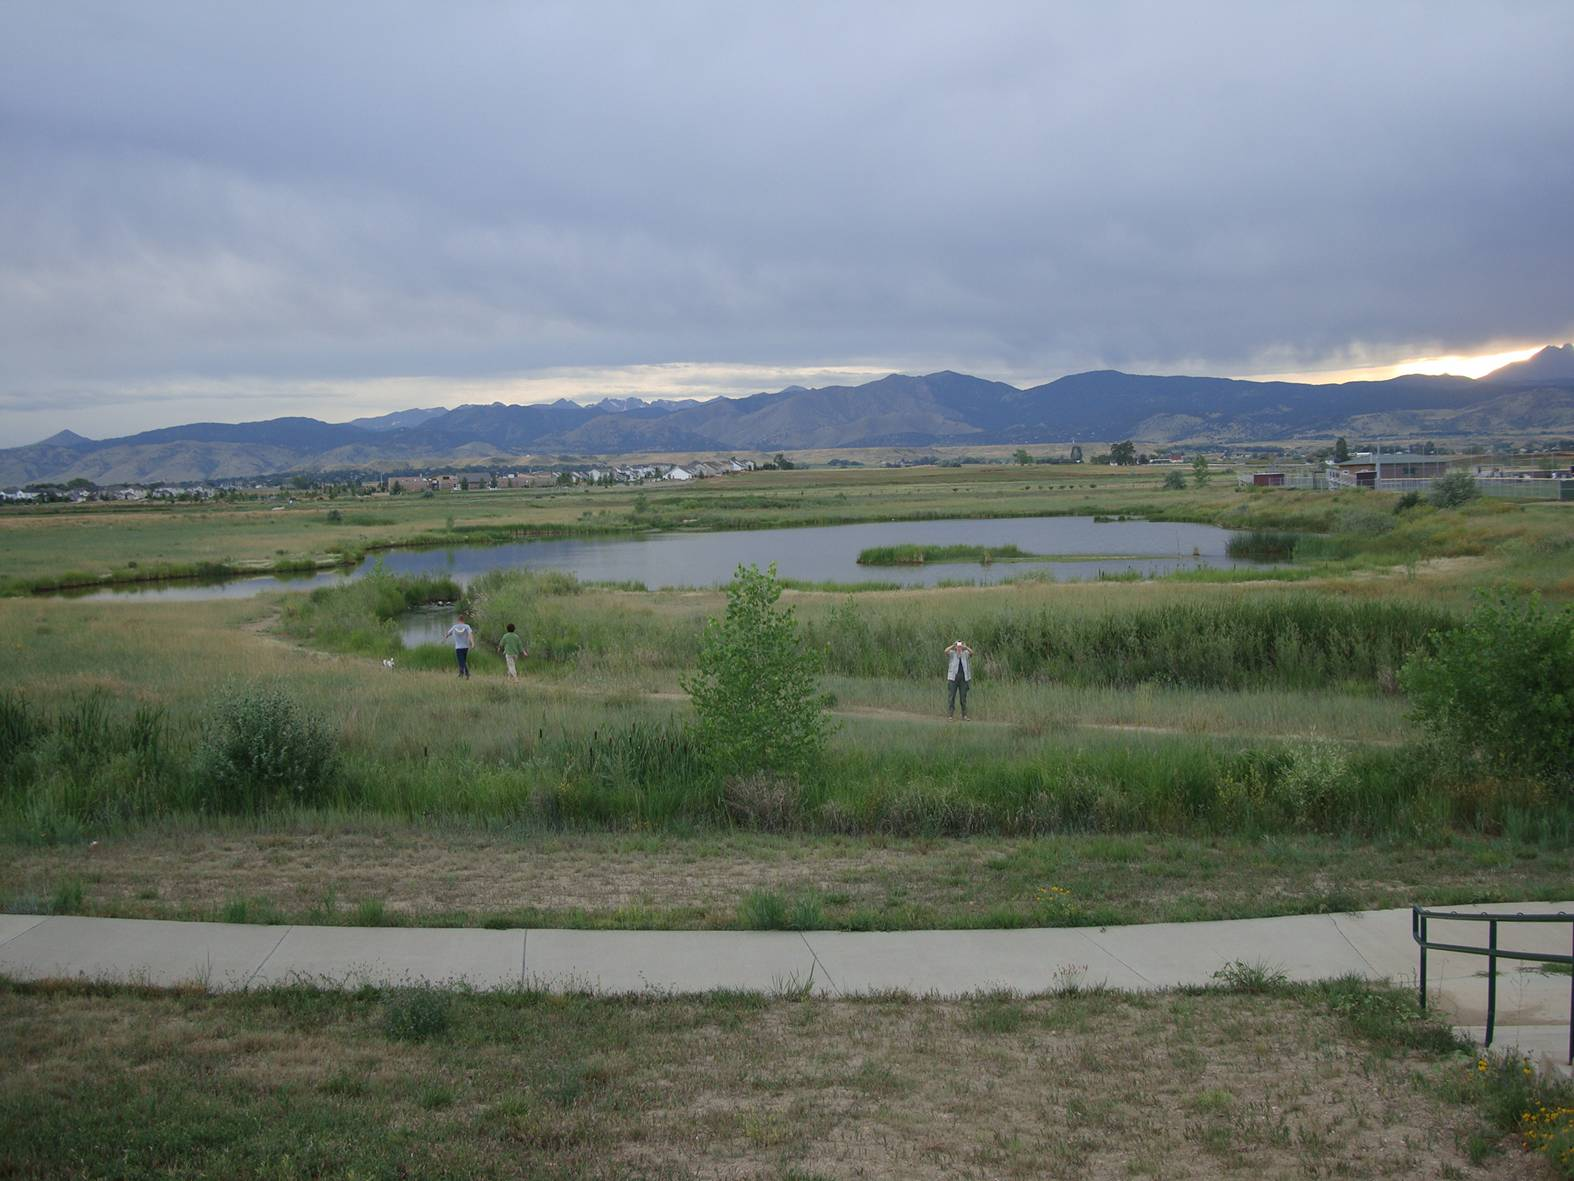 picture: the open space in Longmont, Colorado.  We're off to see the prairie dog colony.